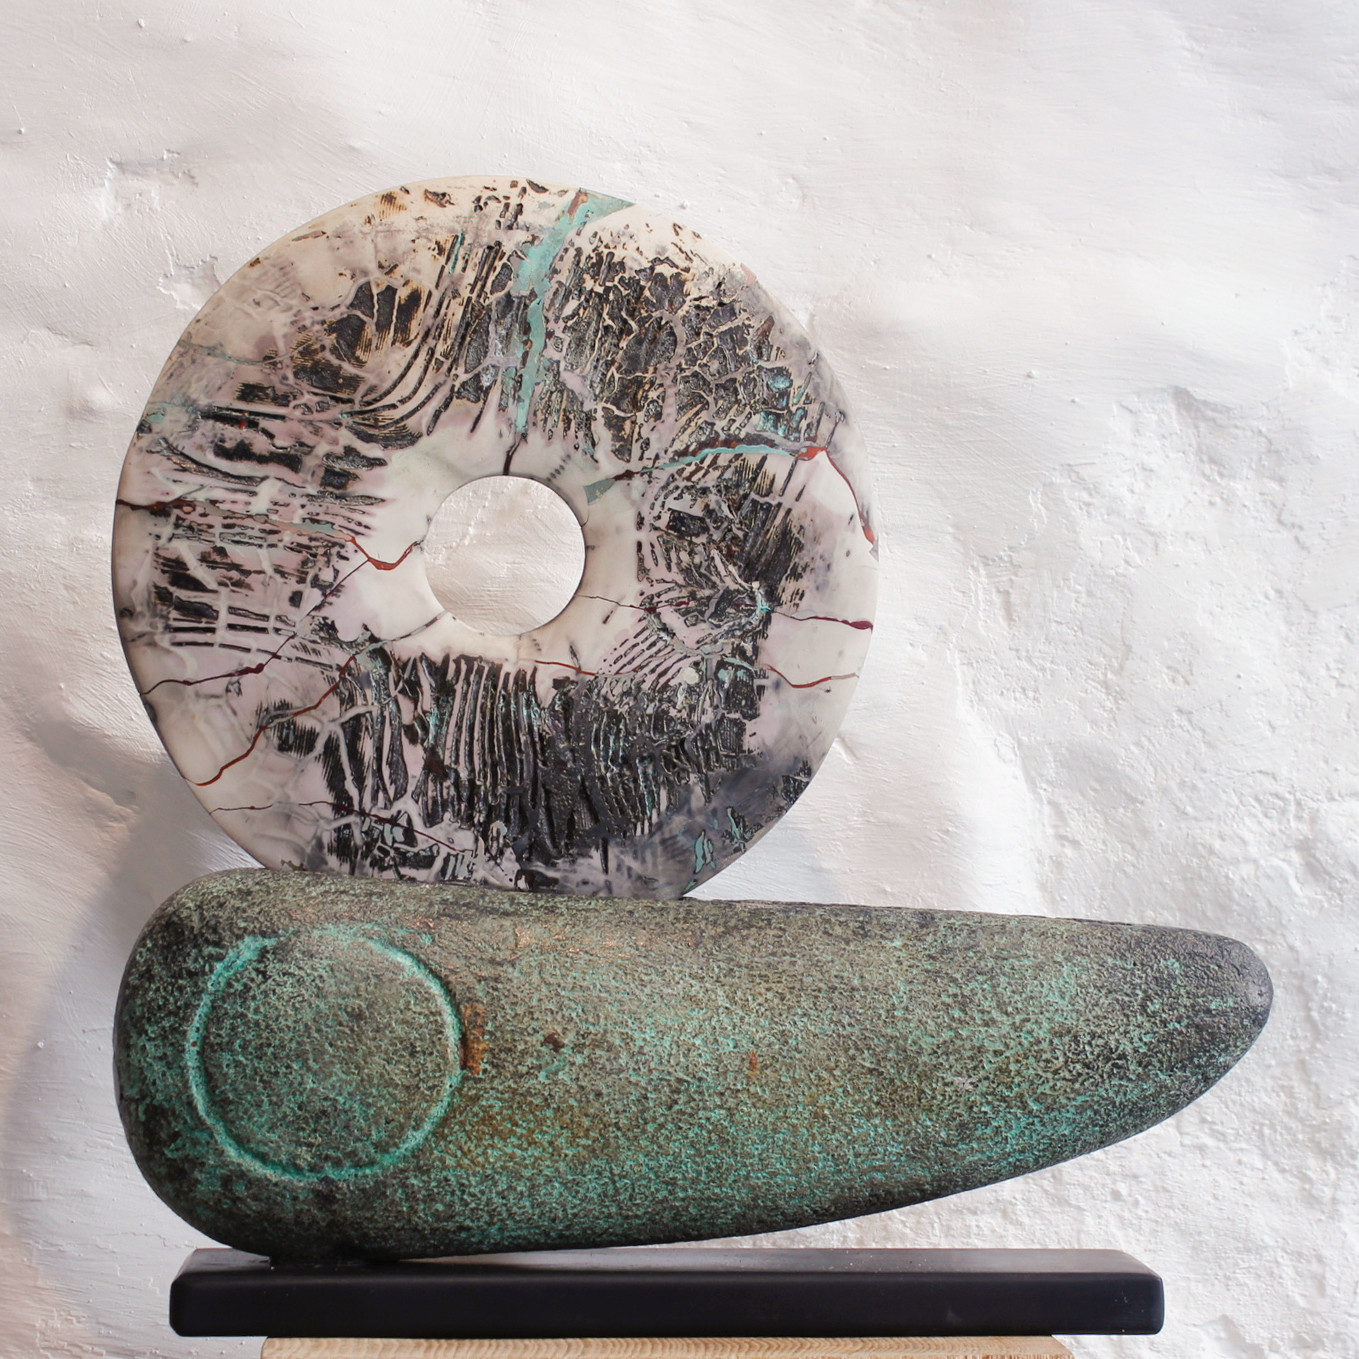 <span class=&#34;link fancybox-details-link&#34;><a href=&#34;/artists/40-peter-hayes/works/5648-peter-hayes-raku-boat-2018/&#34;>View Detail Page</a></span><div class=&#34;artist&#34;><strong>Peter Hayes</strong></div> <div class=&#34;title&#34;><em>Raku Boat</em>, 2018</div> <div class=&#34;signed_and_dated&#34;>signed on base</div> <div class=&#34;medium&#34;>stoneware</div> <div class=&#34;dimensions&#34;>35.6 x 10.2 cm<br /> 14 x 4 inches</div><div class=&#34;copyright_line&#34;>OwnArt: £ 80 x 10 Months, 0% APR</div>